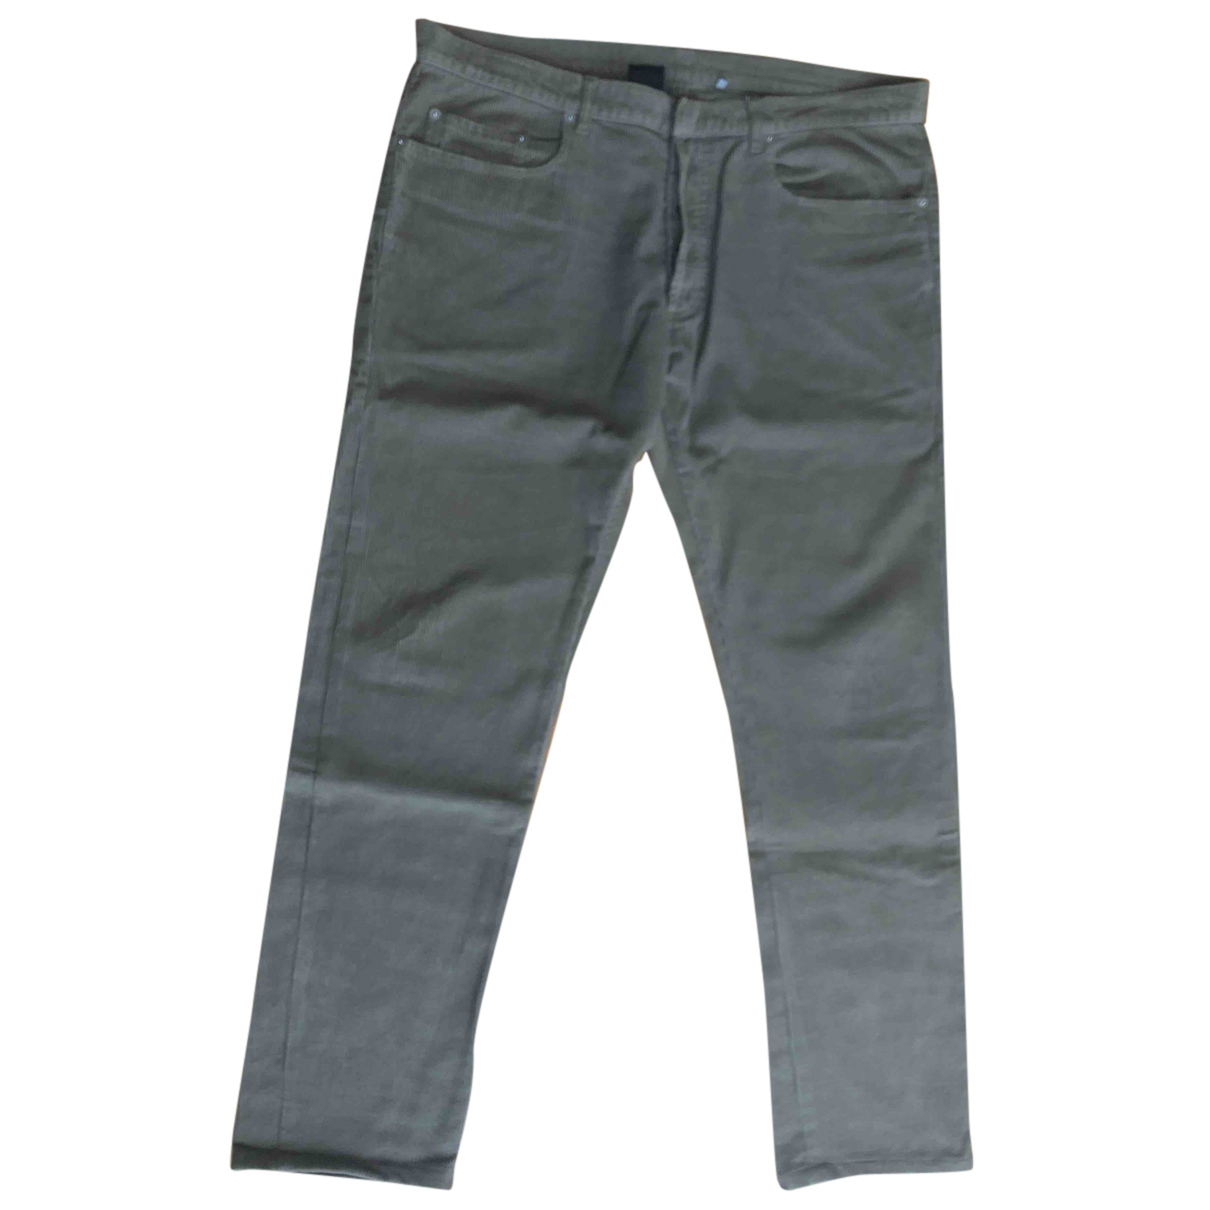 Dior Homme N Beige Cotton Trousers for Men 36 UK - US